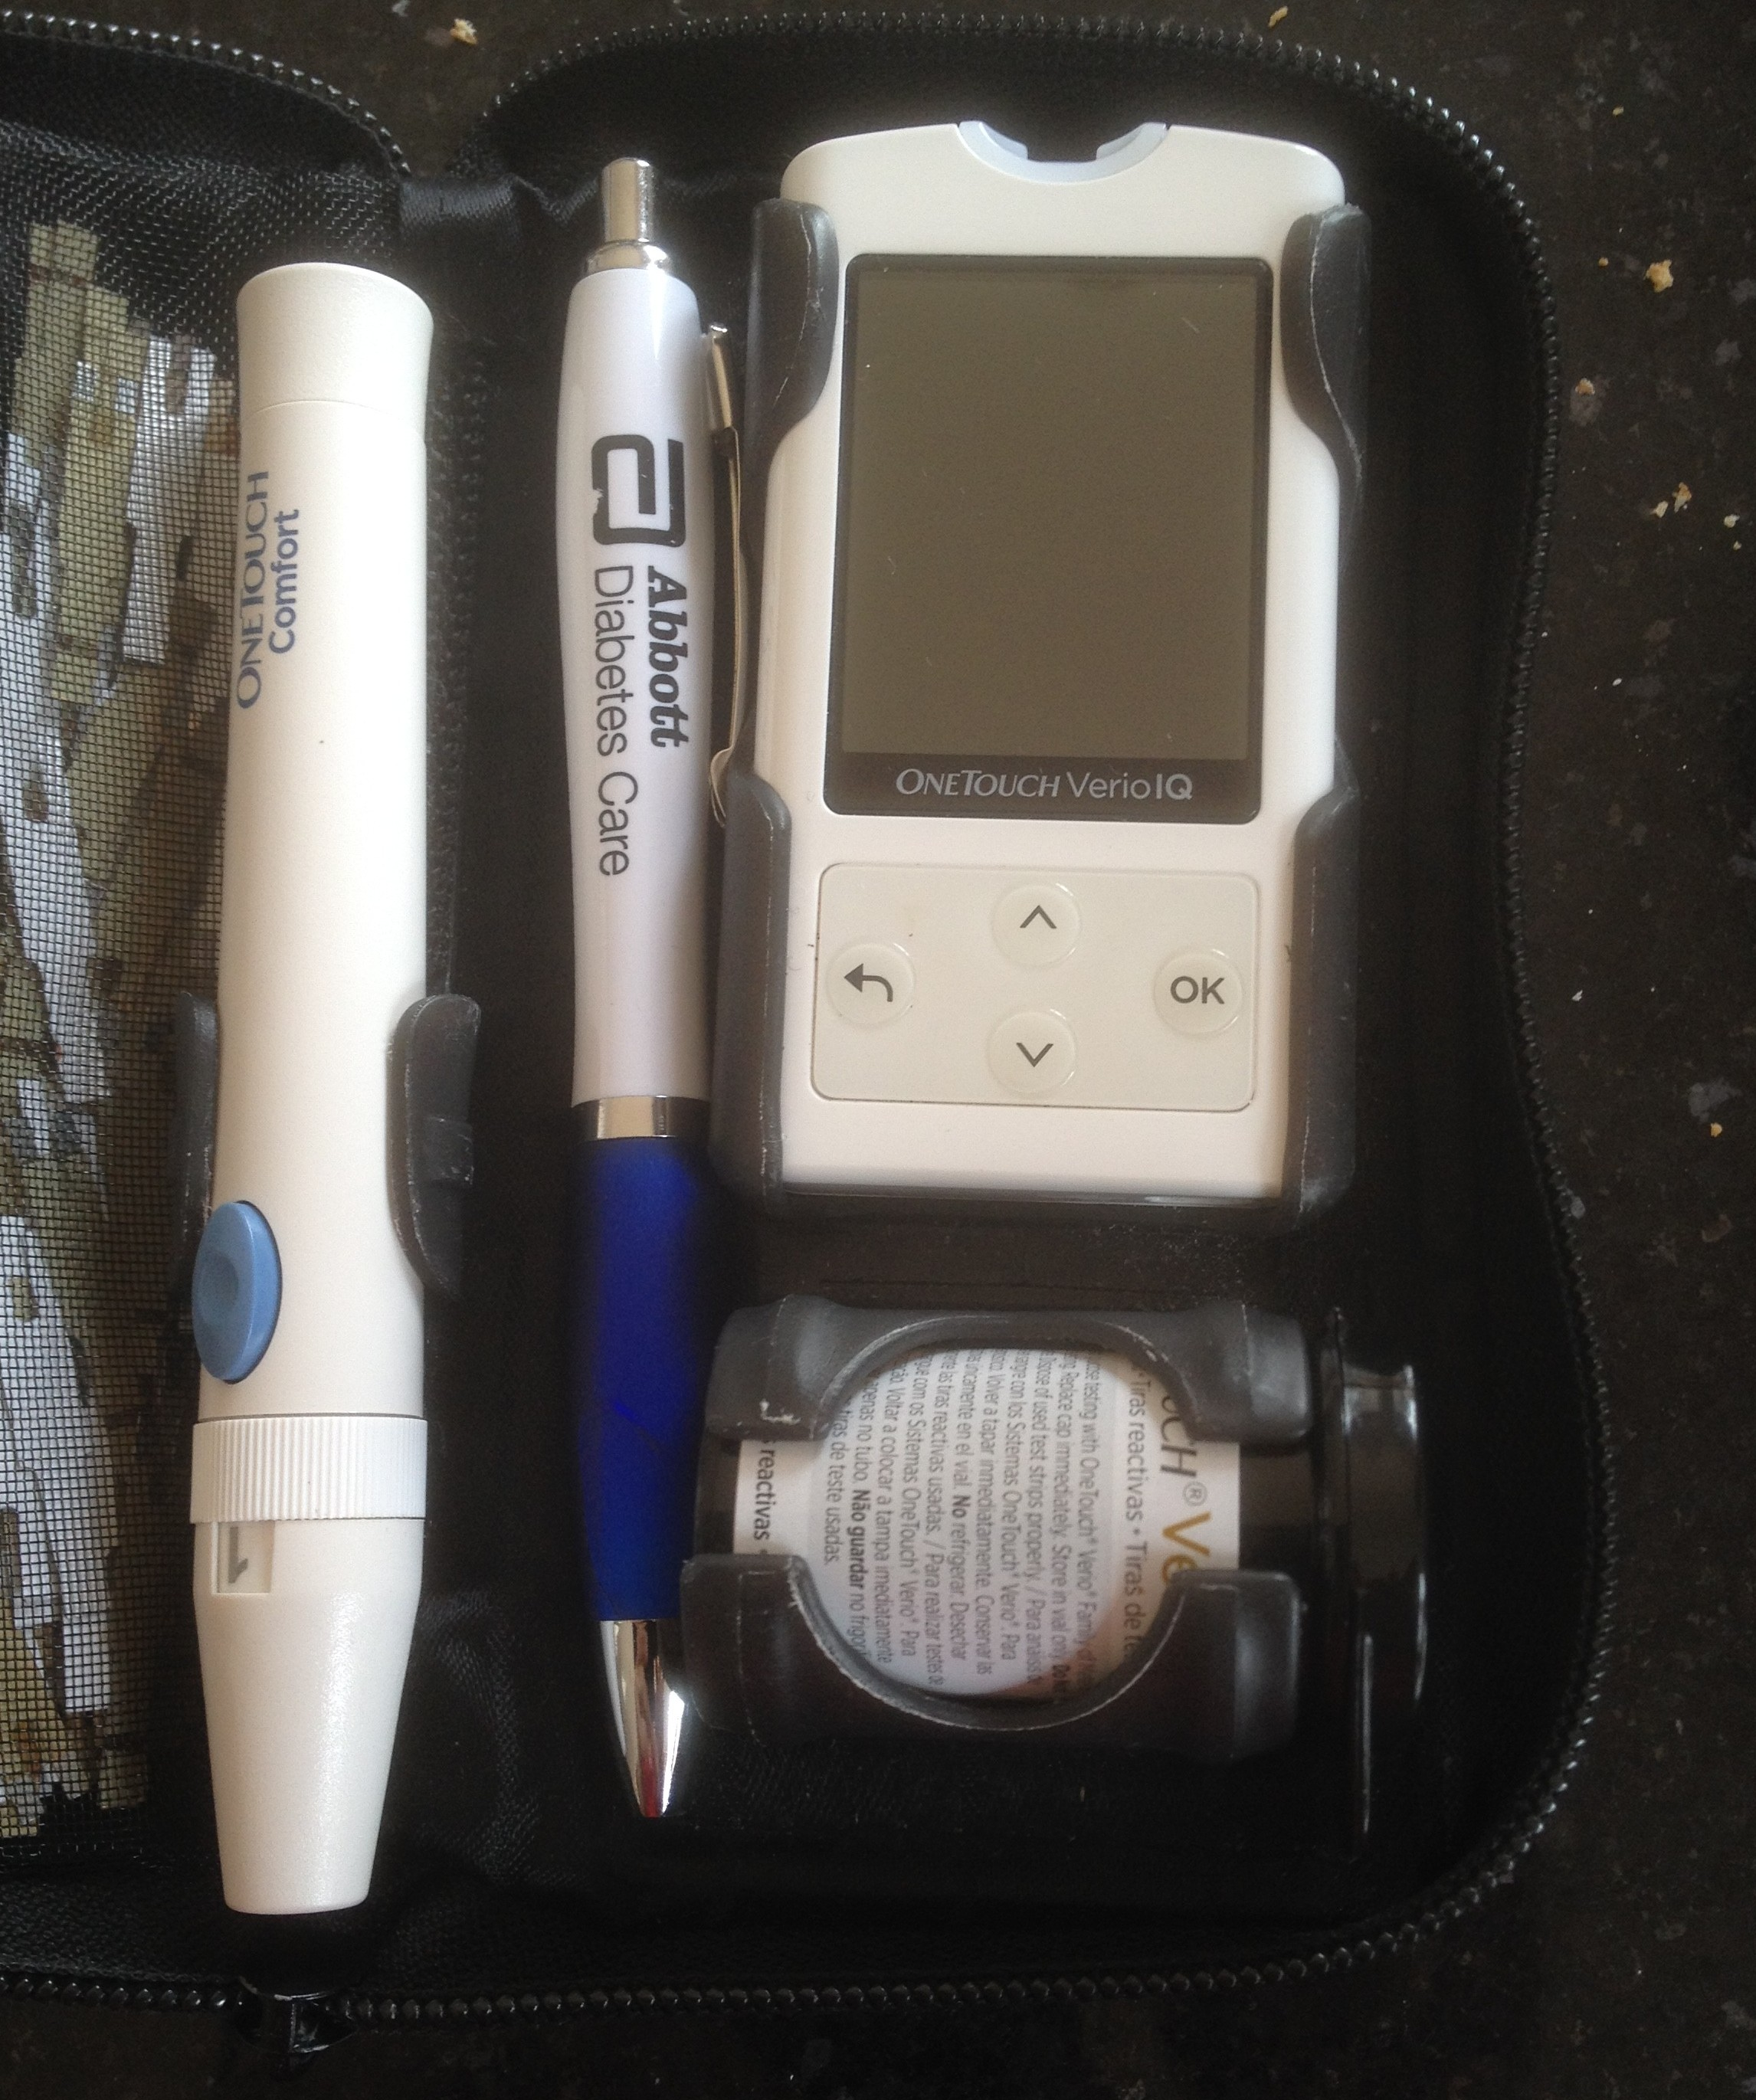 Pen stored inside Blood Glucose meter case. Photo credit Blood Sugar Trampoline